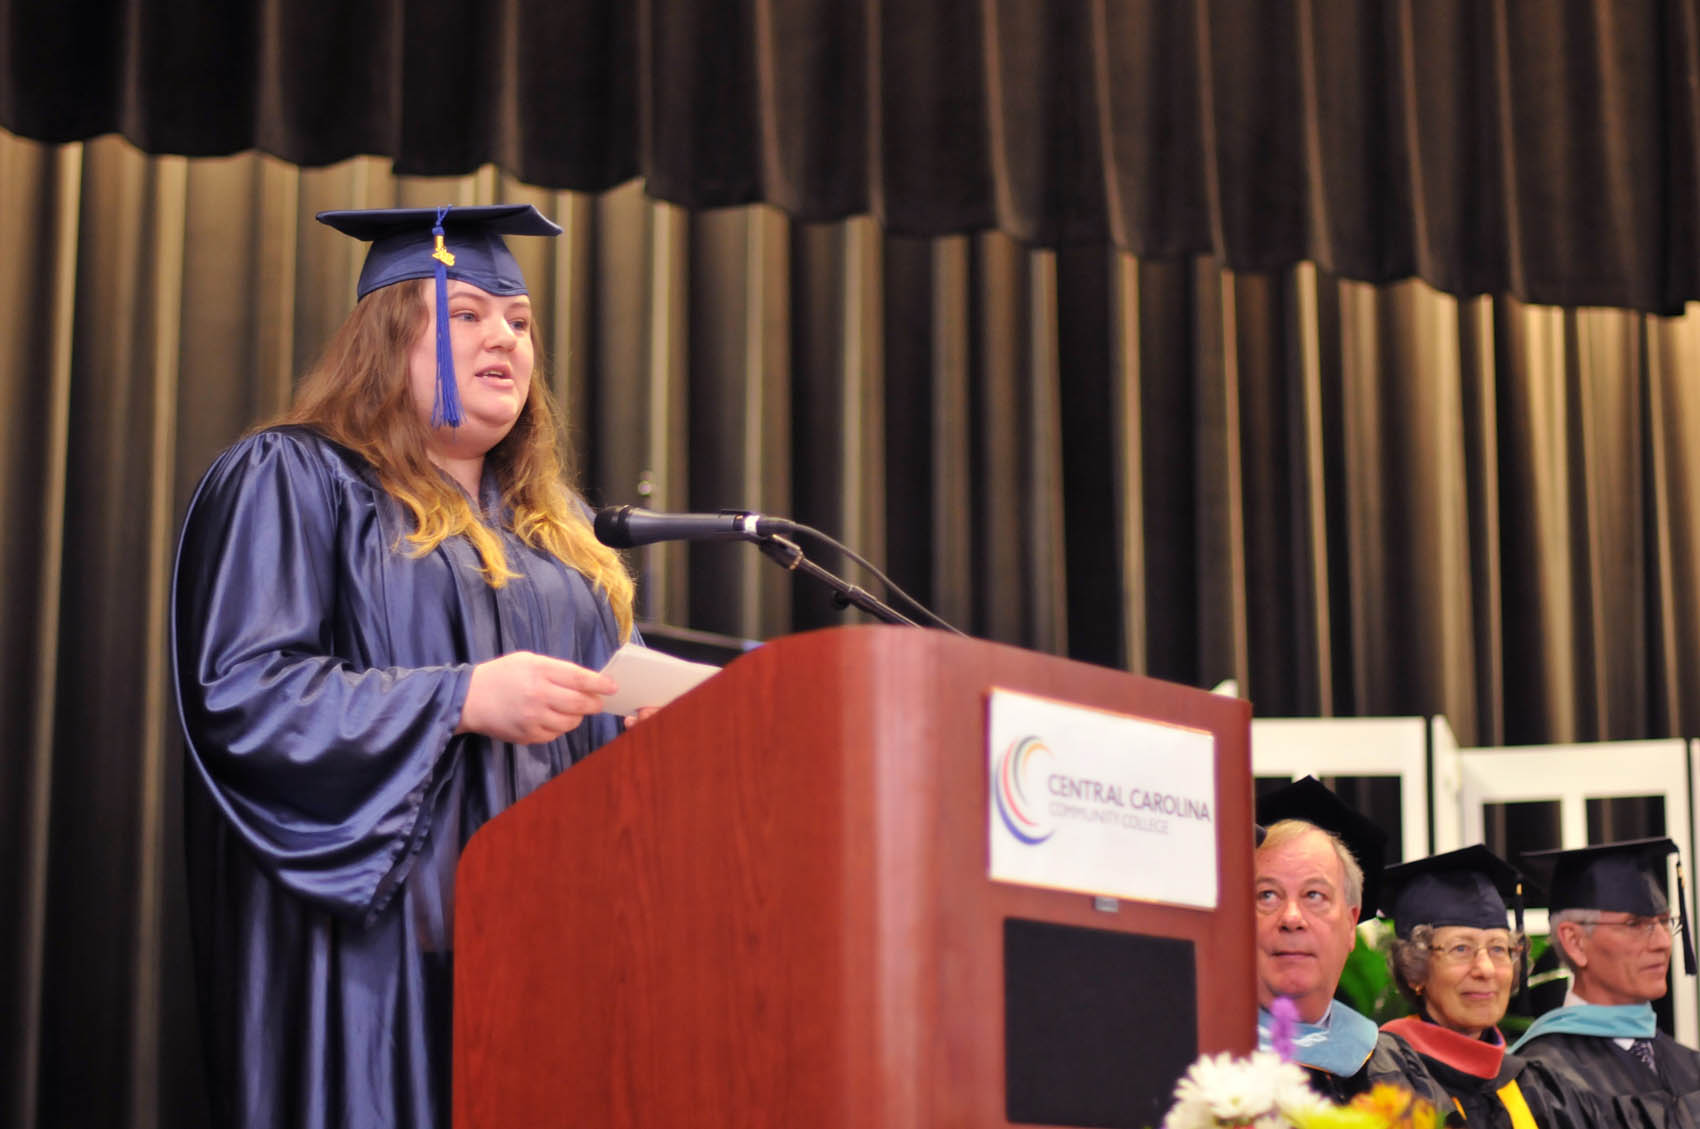 Click to enlarge,  Jordan Graham, a Harnett County graduate, was one of the commencement student speakers at Central Carolina Community College's College and Career Readiness Commencement Exercises on Feb. 1.